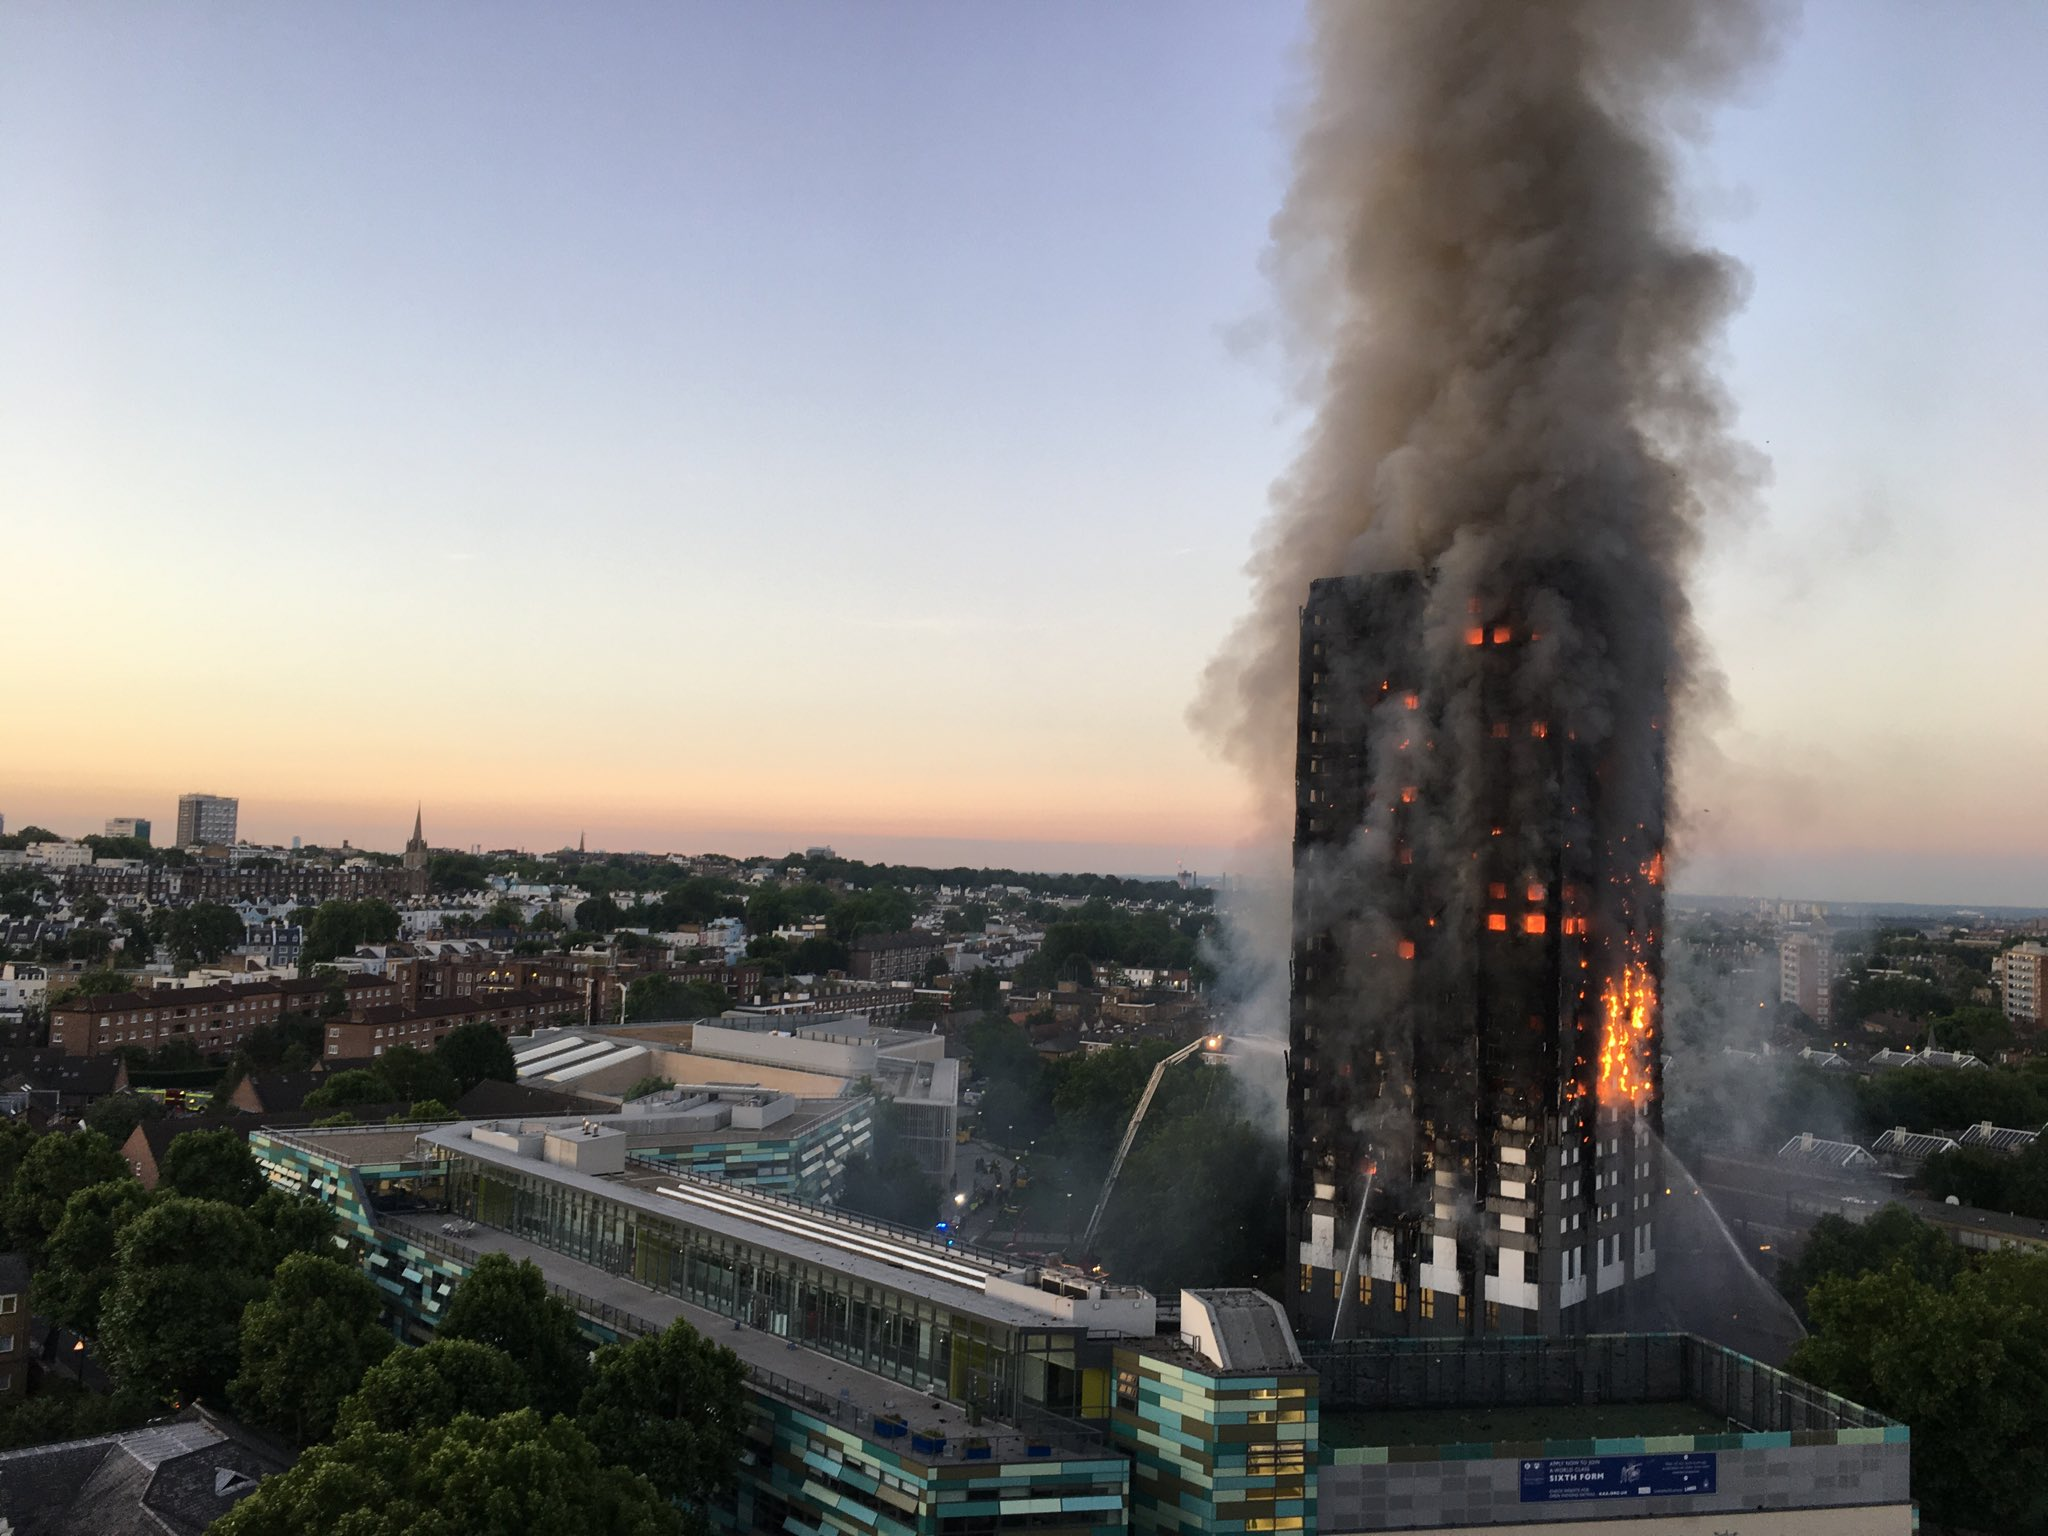 U.S. companies sued over London's deadly Grenfell Tower fire